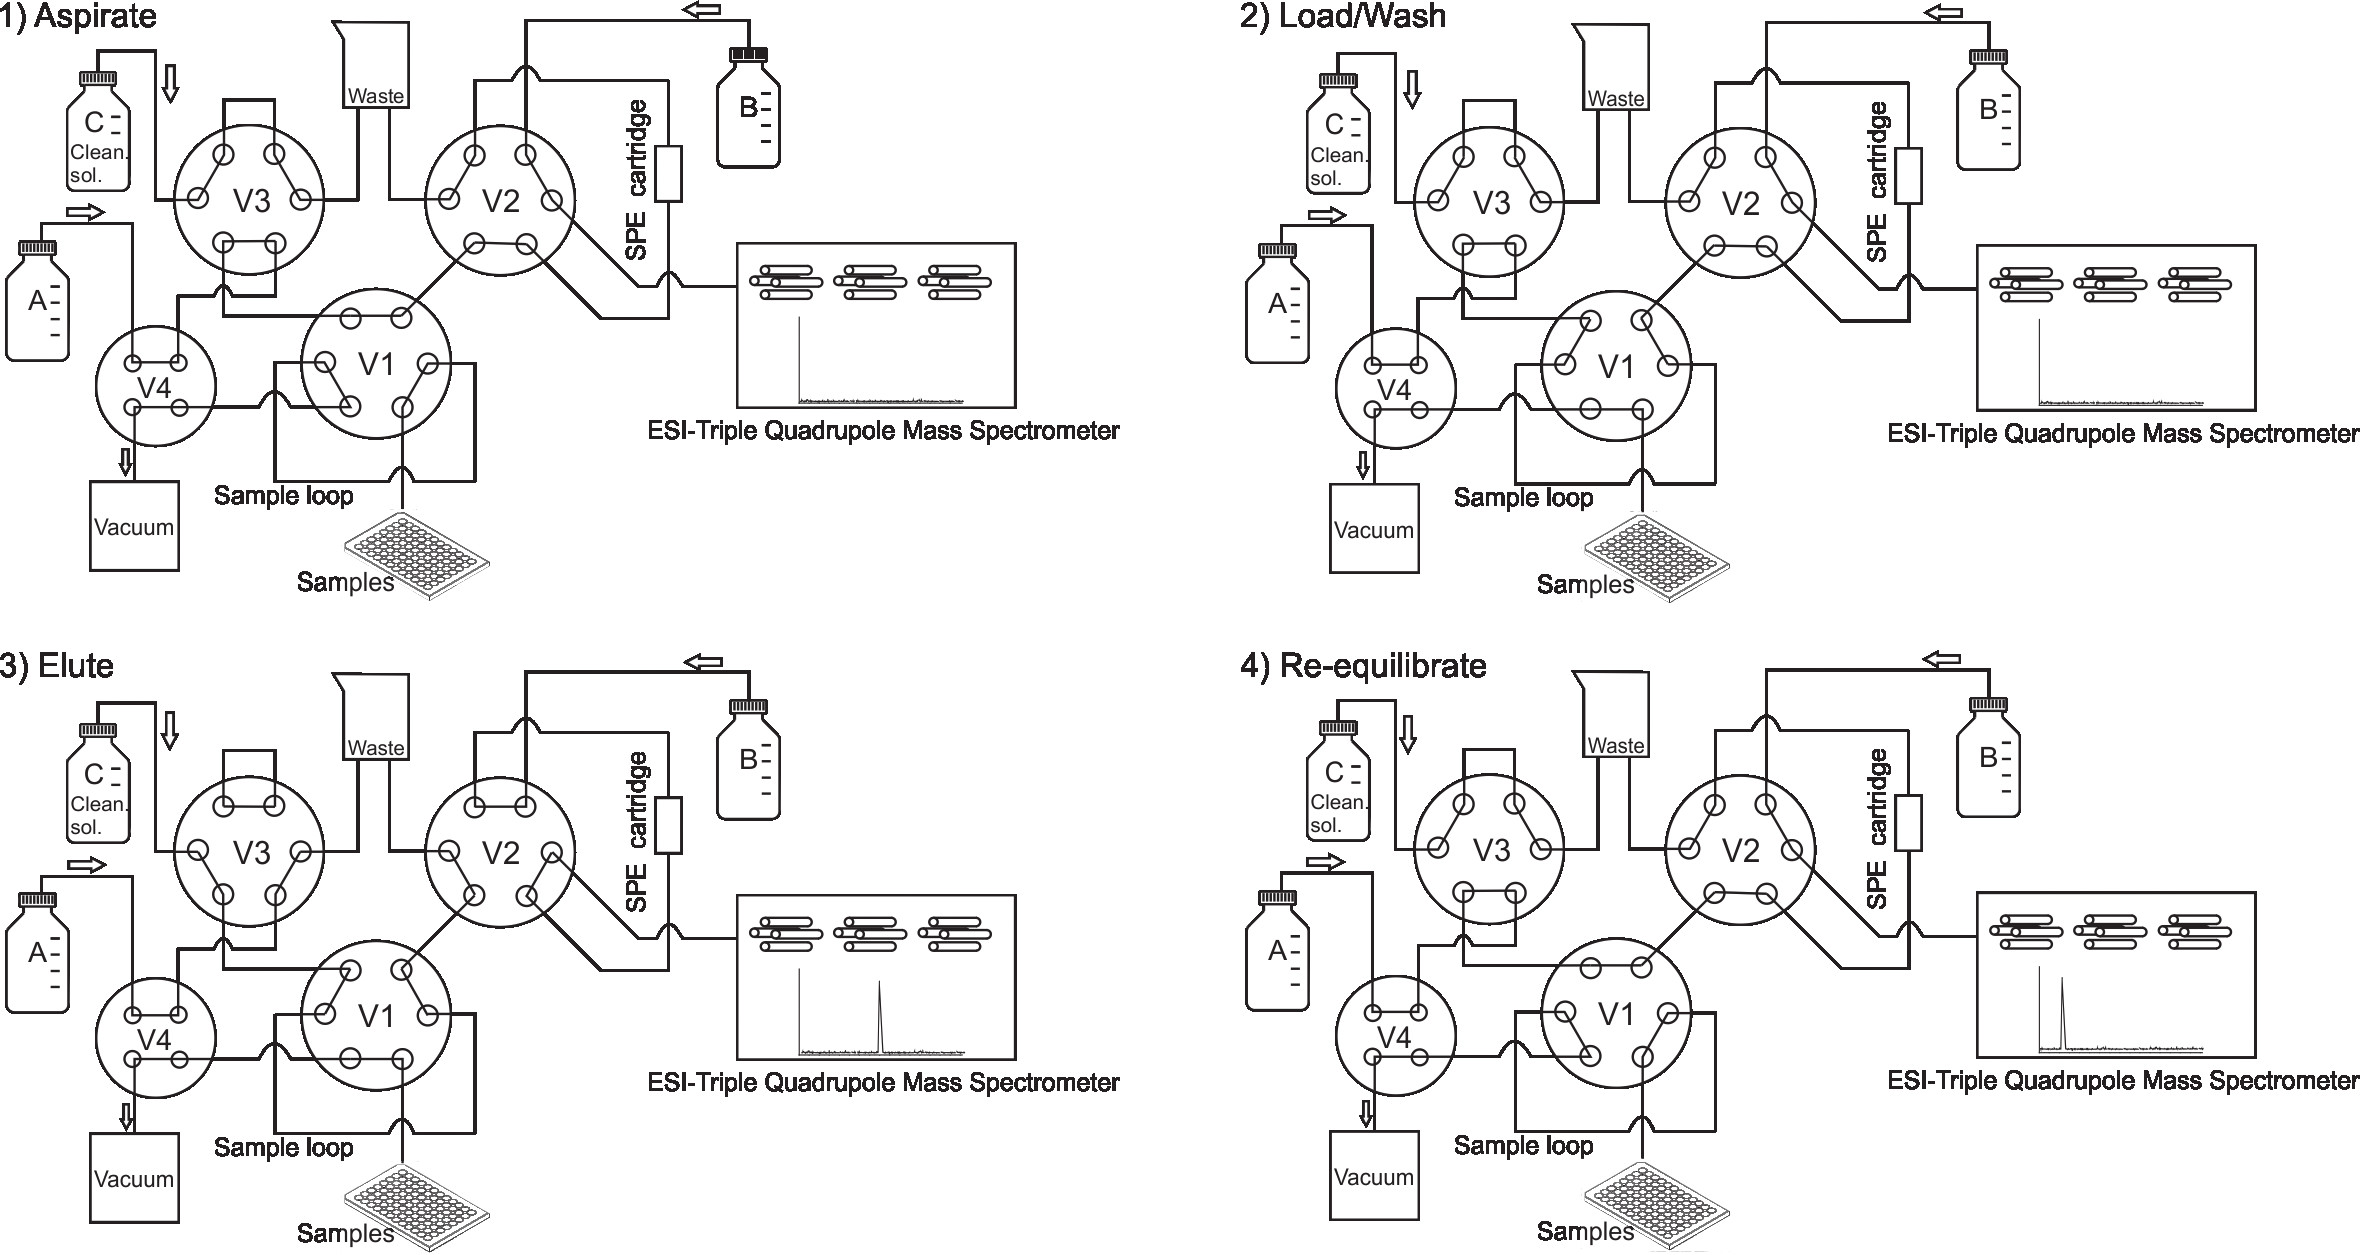 Diagram of the online SPE-MS/MS system (adapted from RapidFire documentation, Agilent, USA). 1) Aspirate: samples